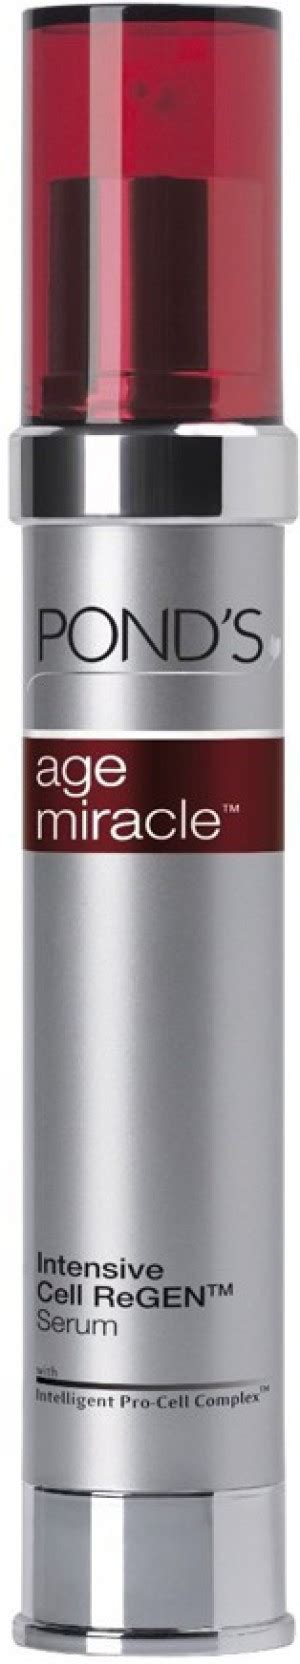 ponds age miracle intensive cell regen serum ponds age miracle intensive cell regen serum price in